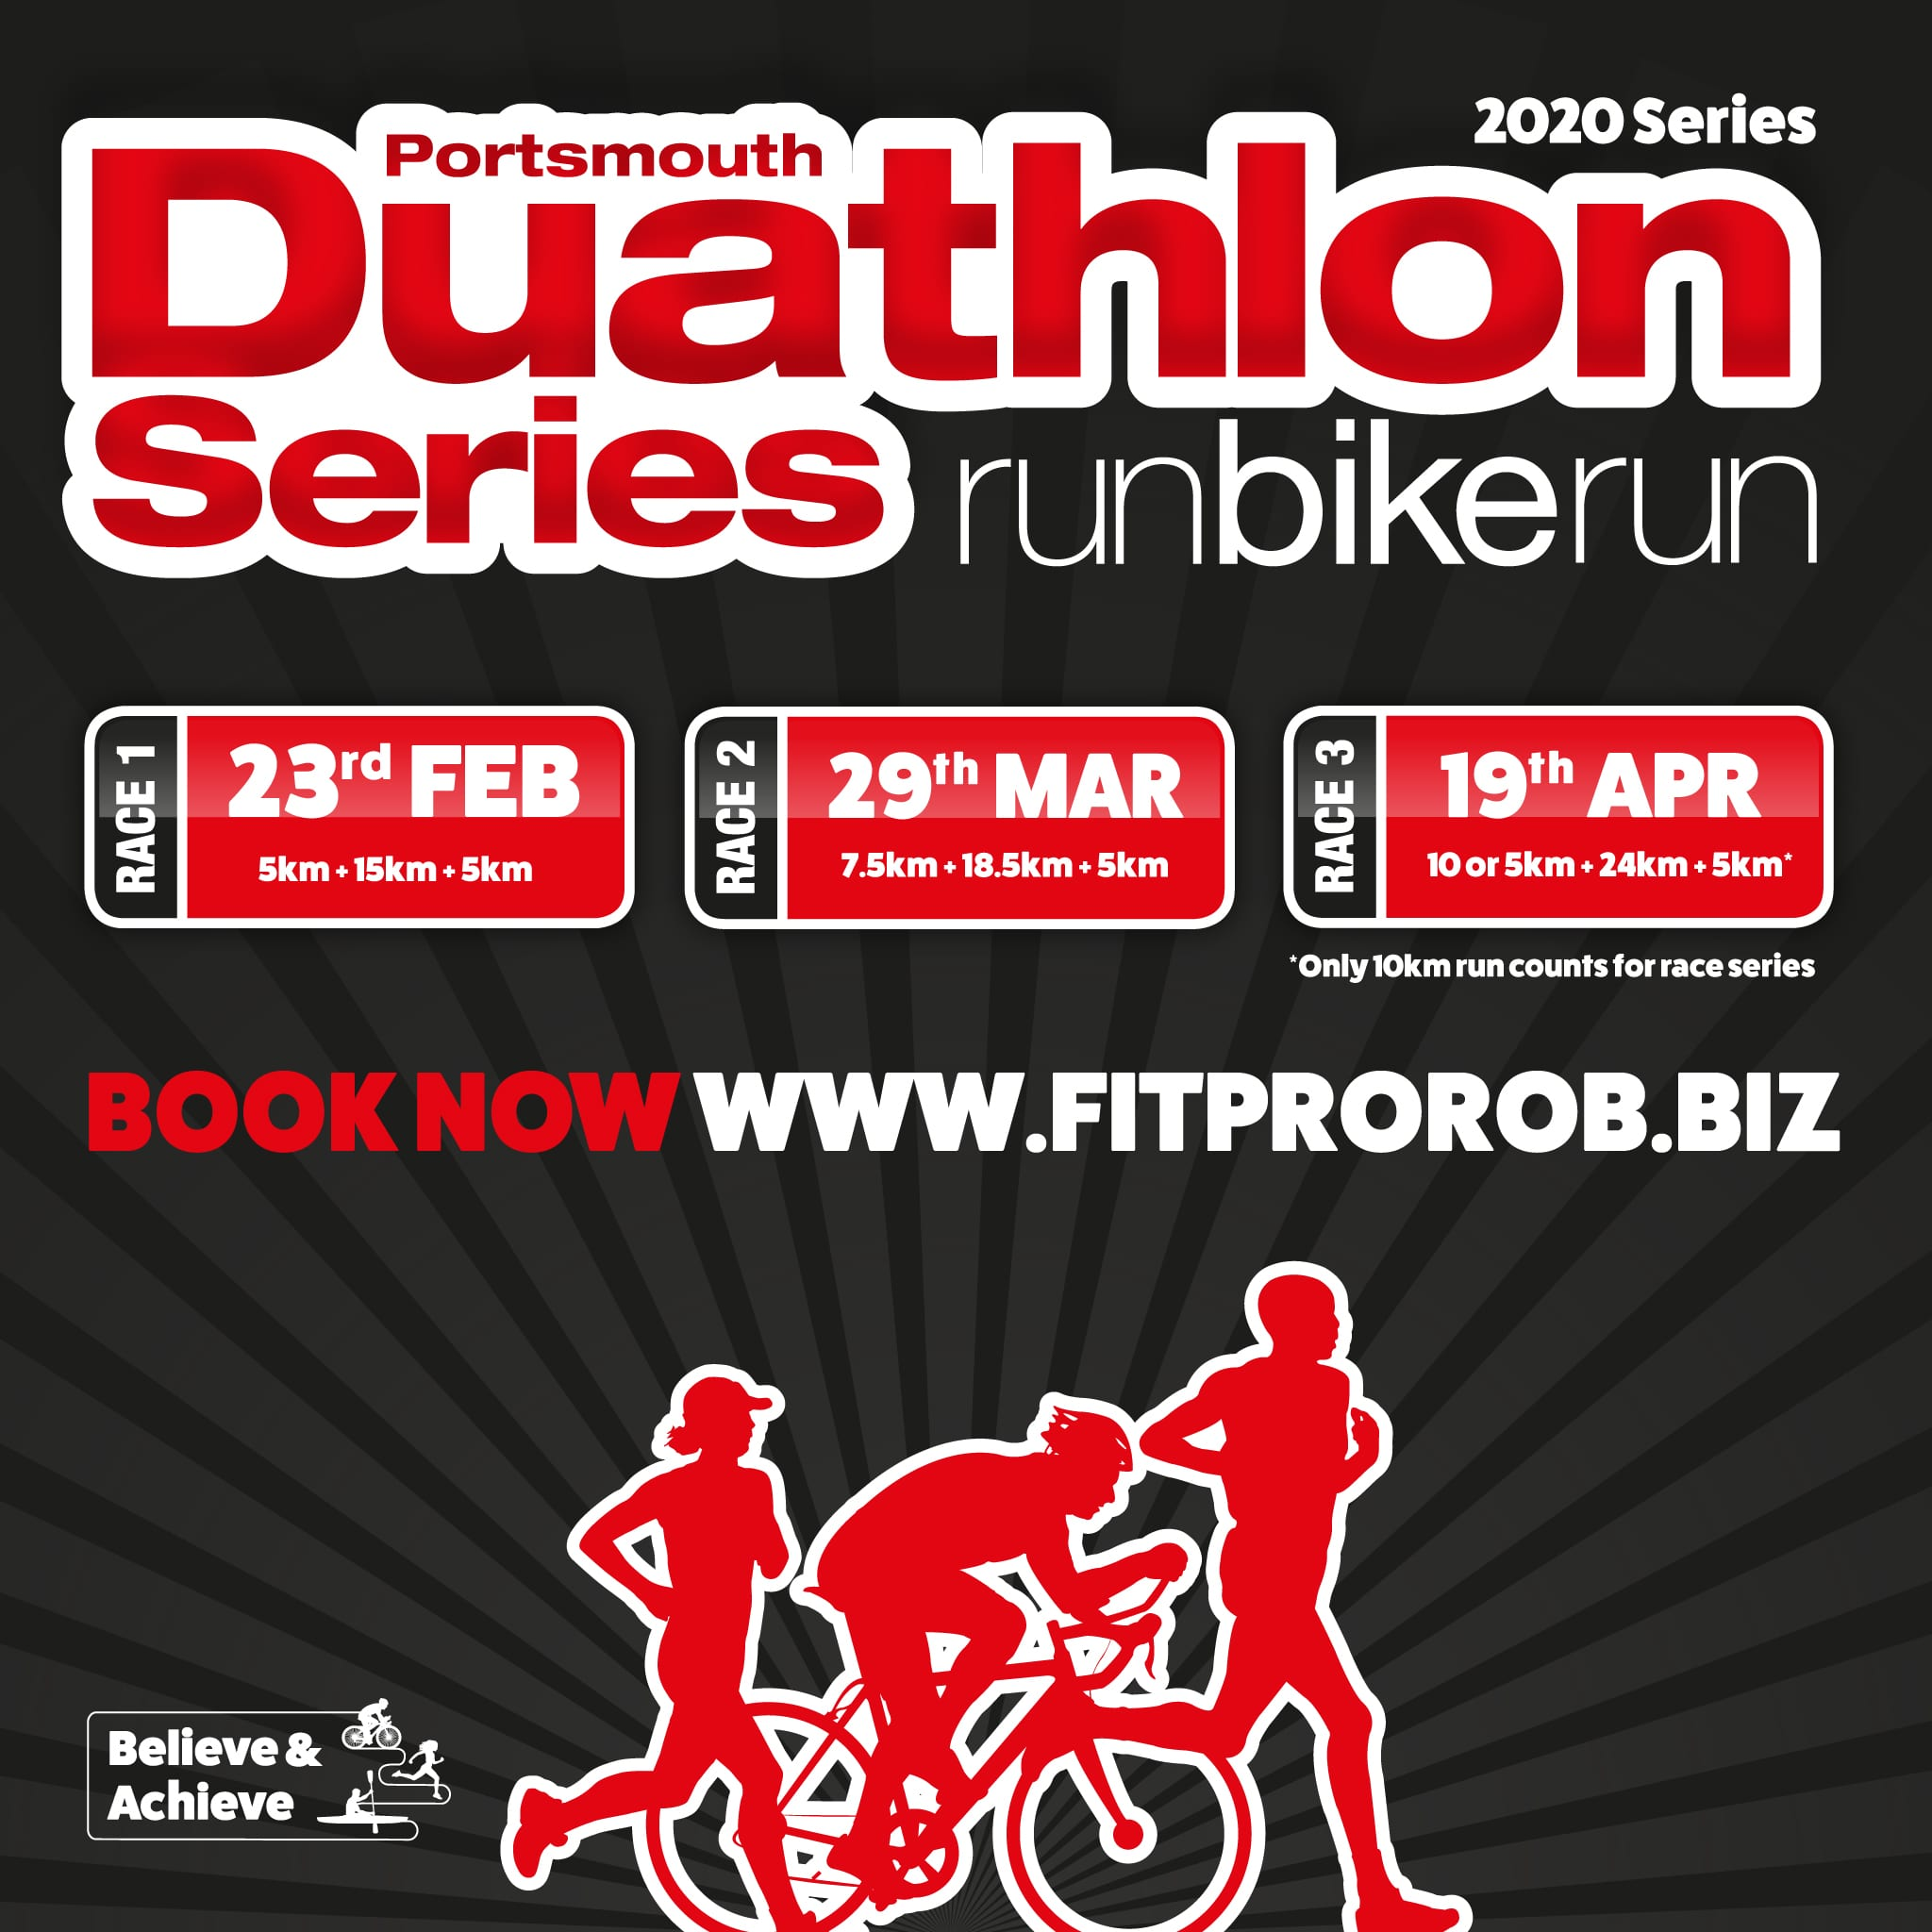 Portsmouth Duathlon Series